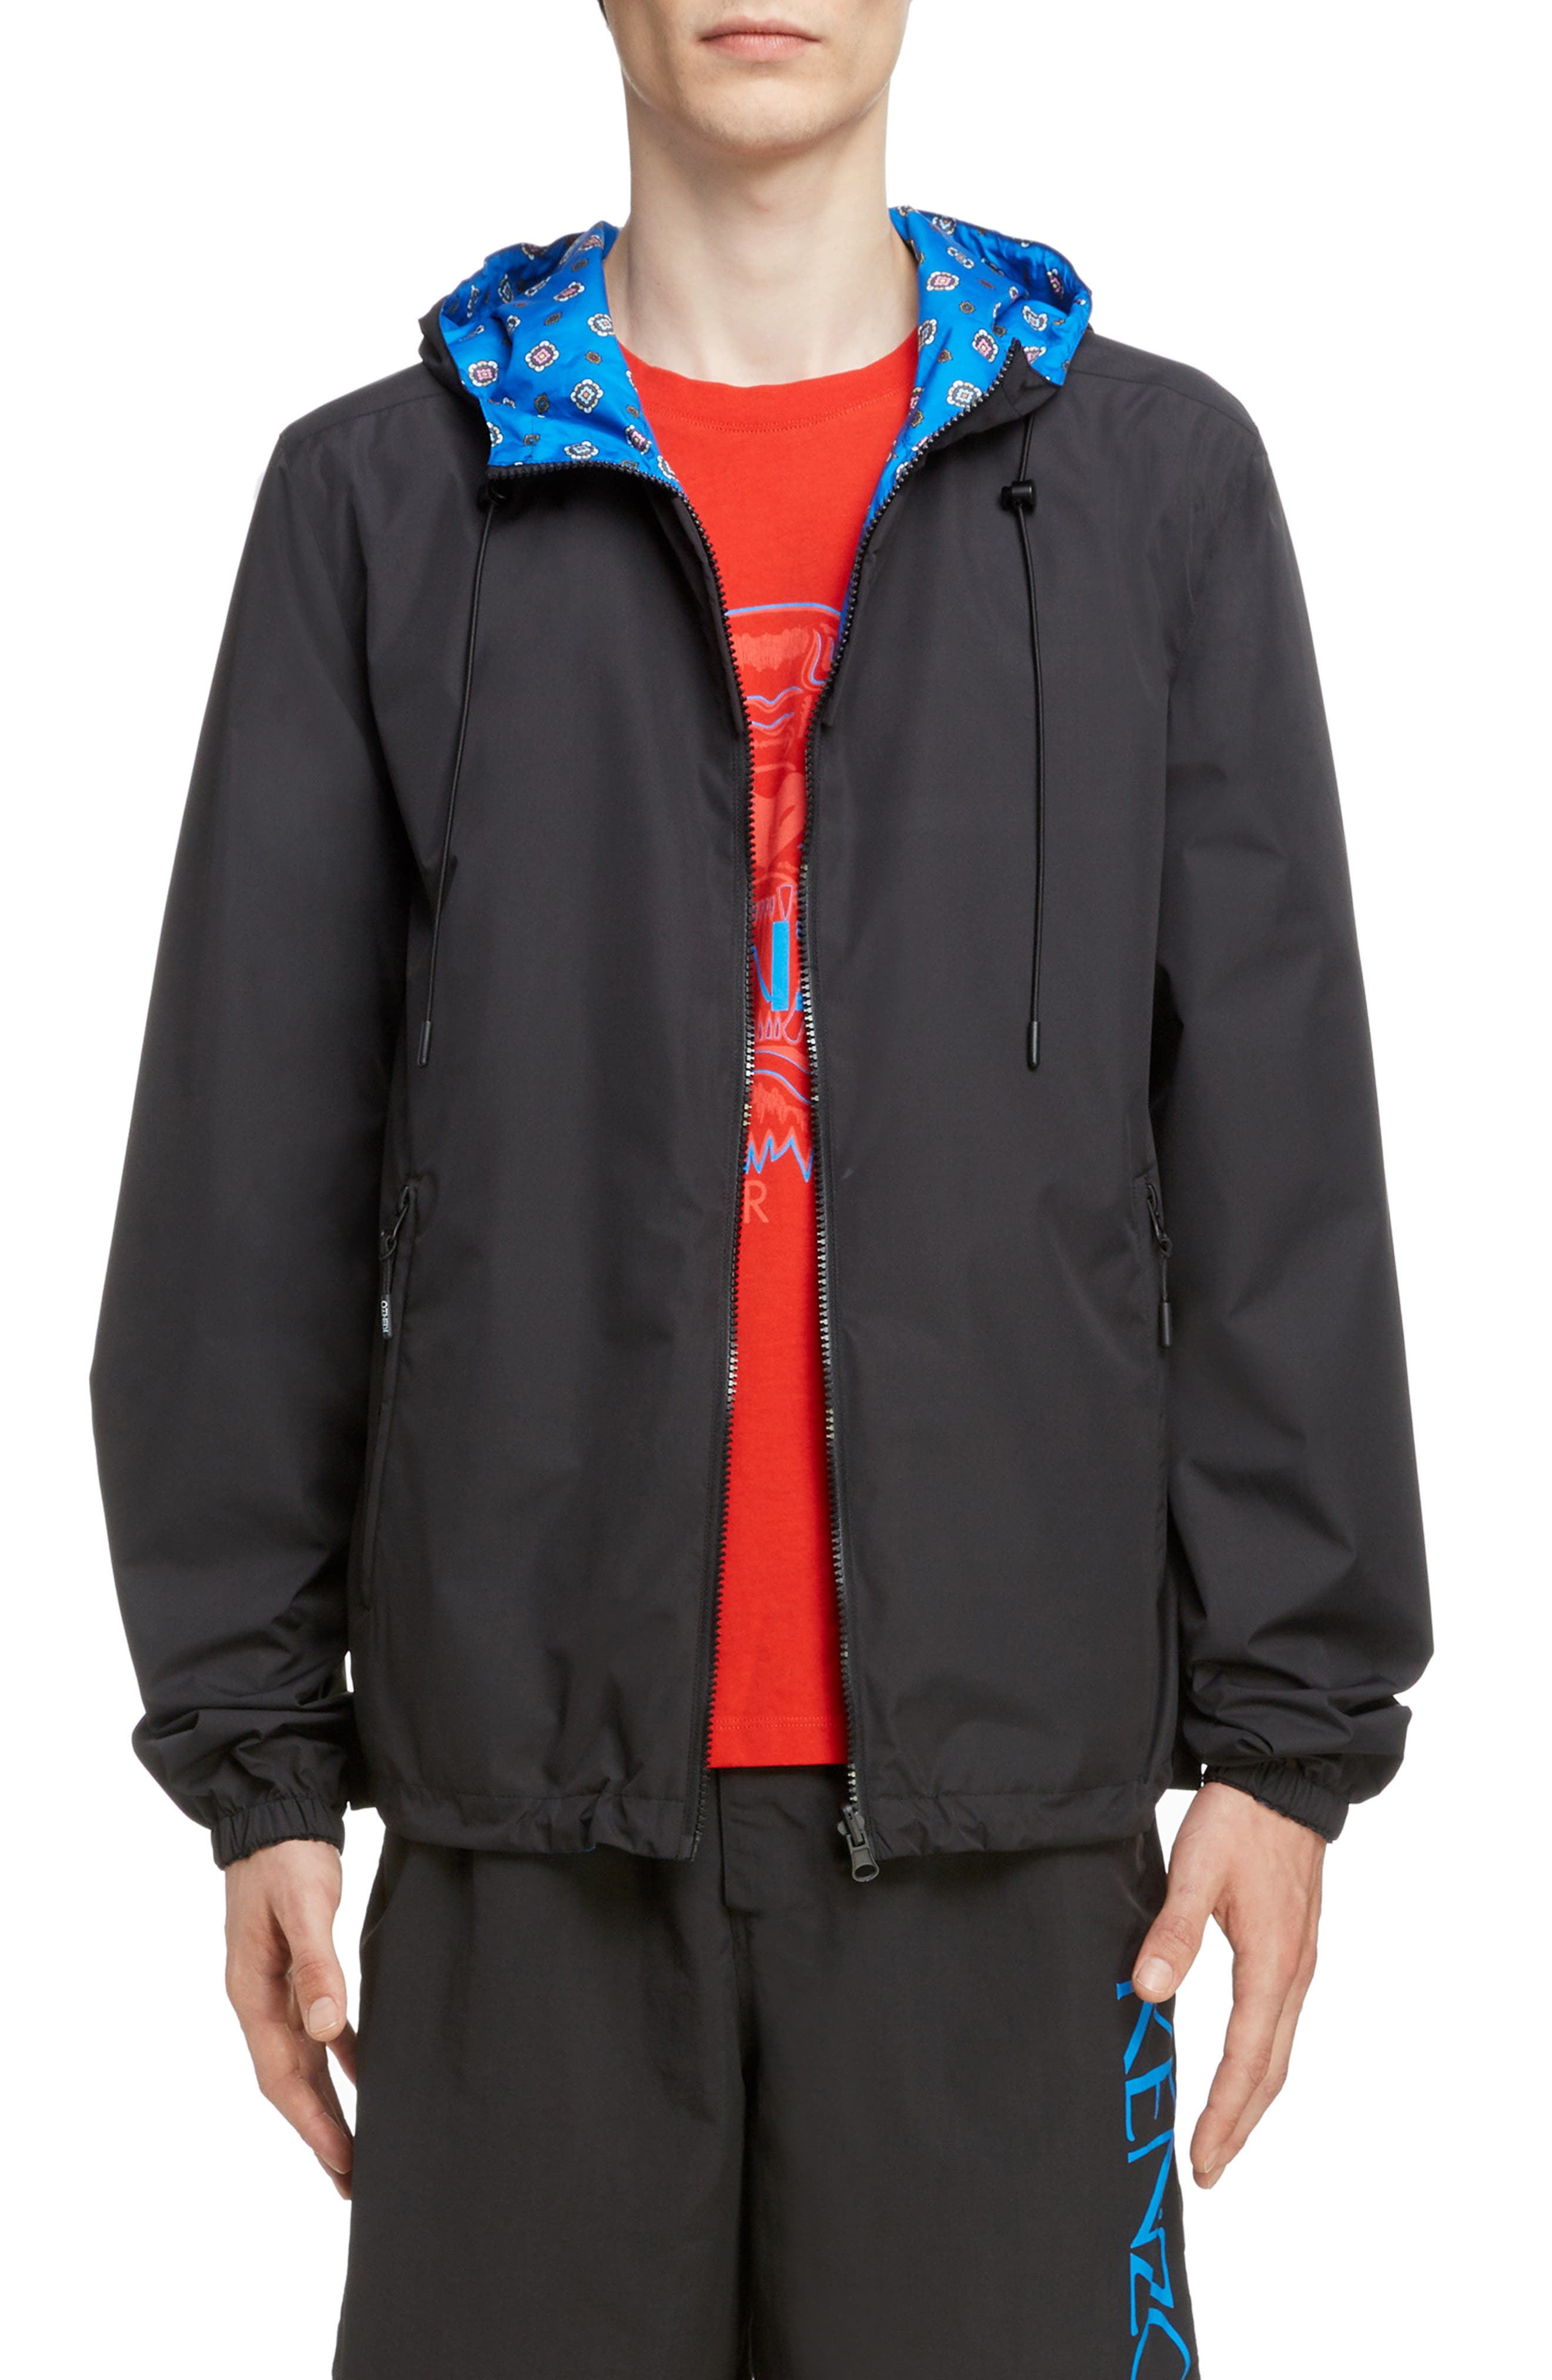 KENZO, Reversible Hooded Windbreaker, Main thumbnail 1, color, BLACK